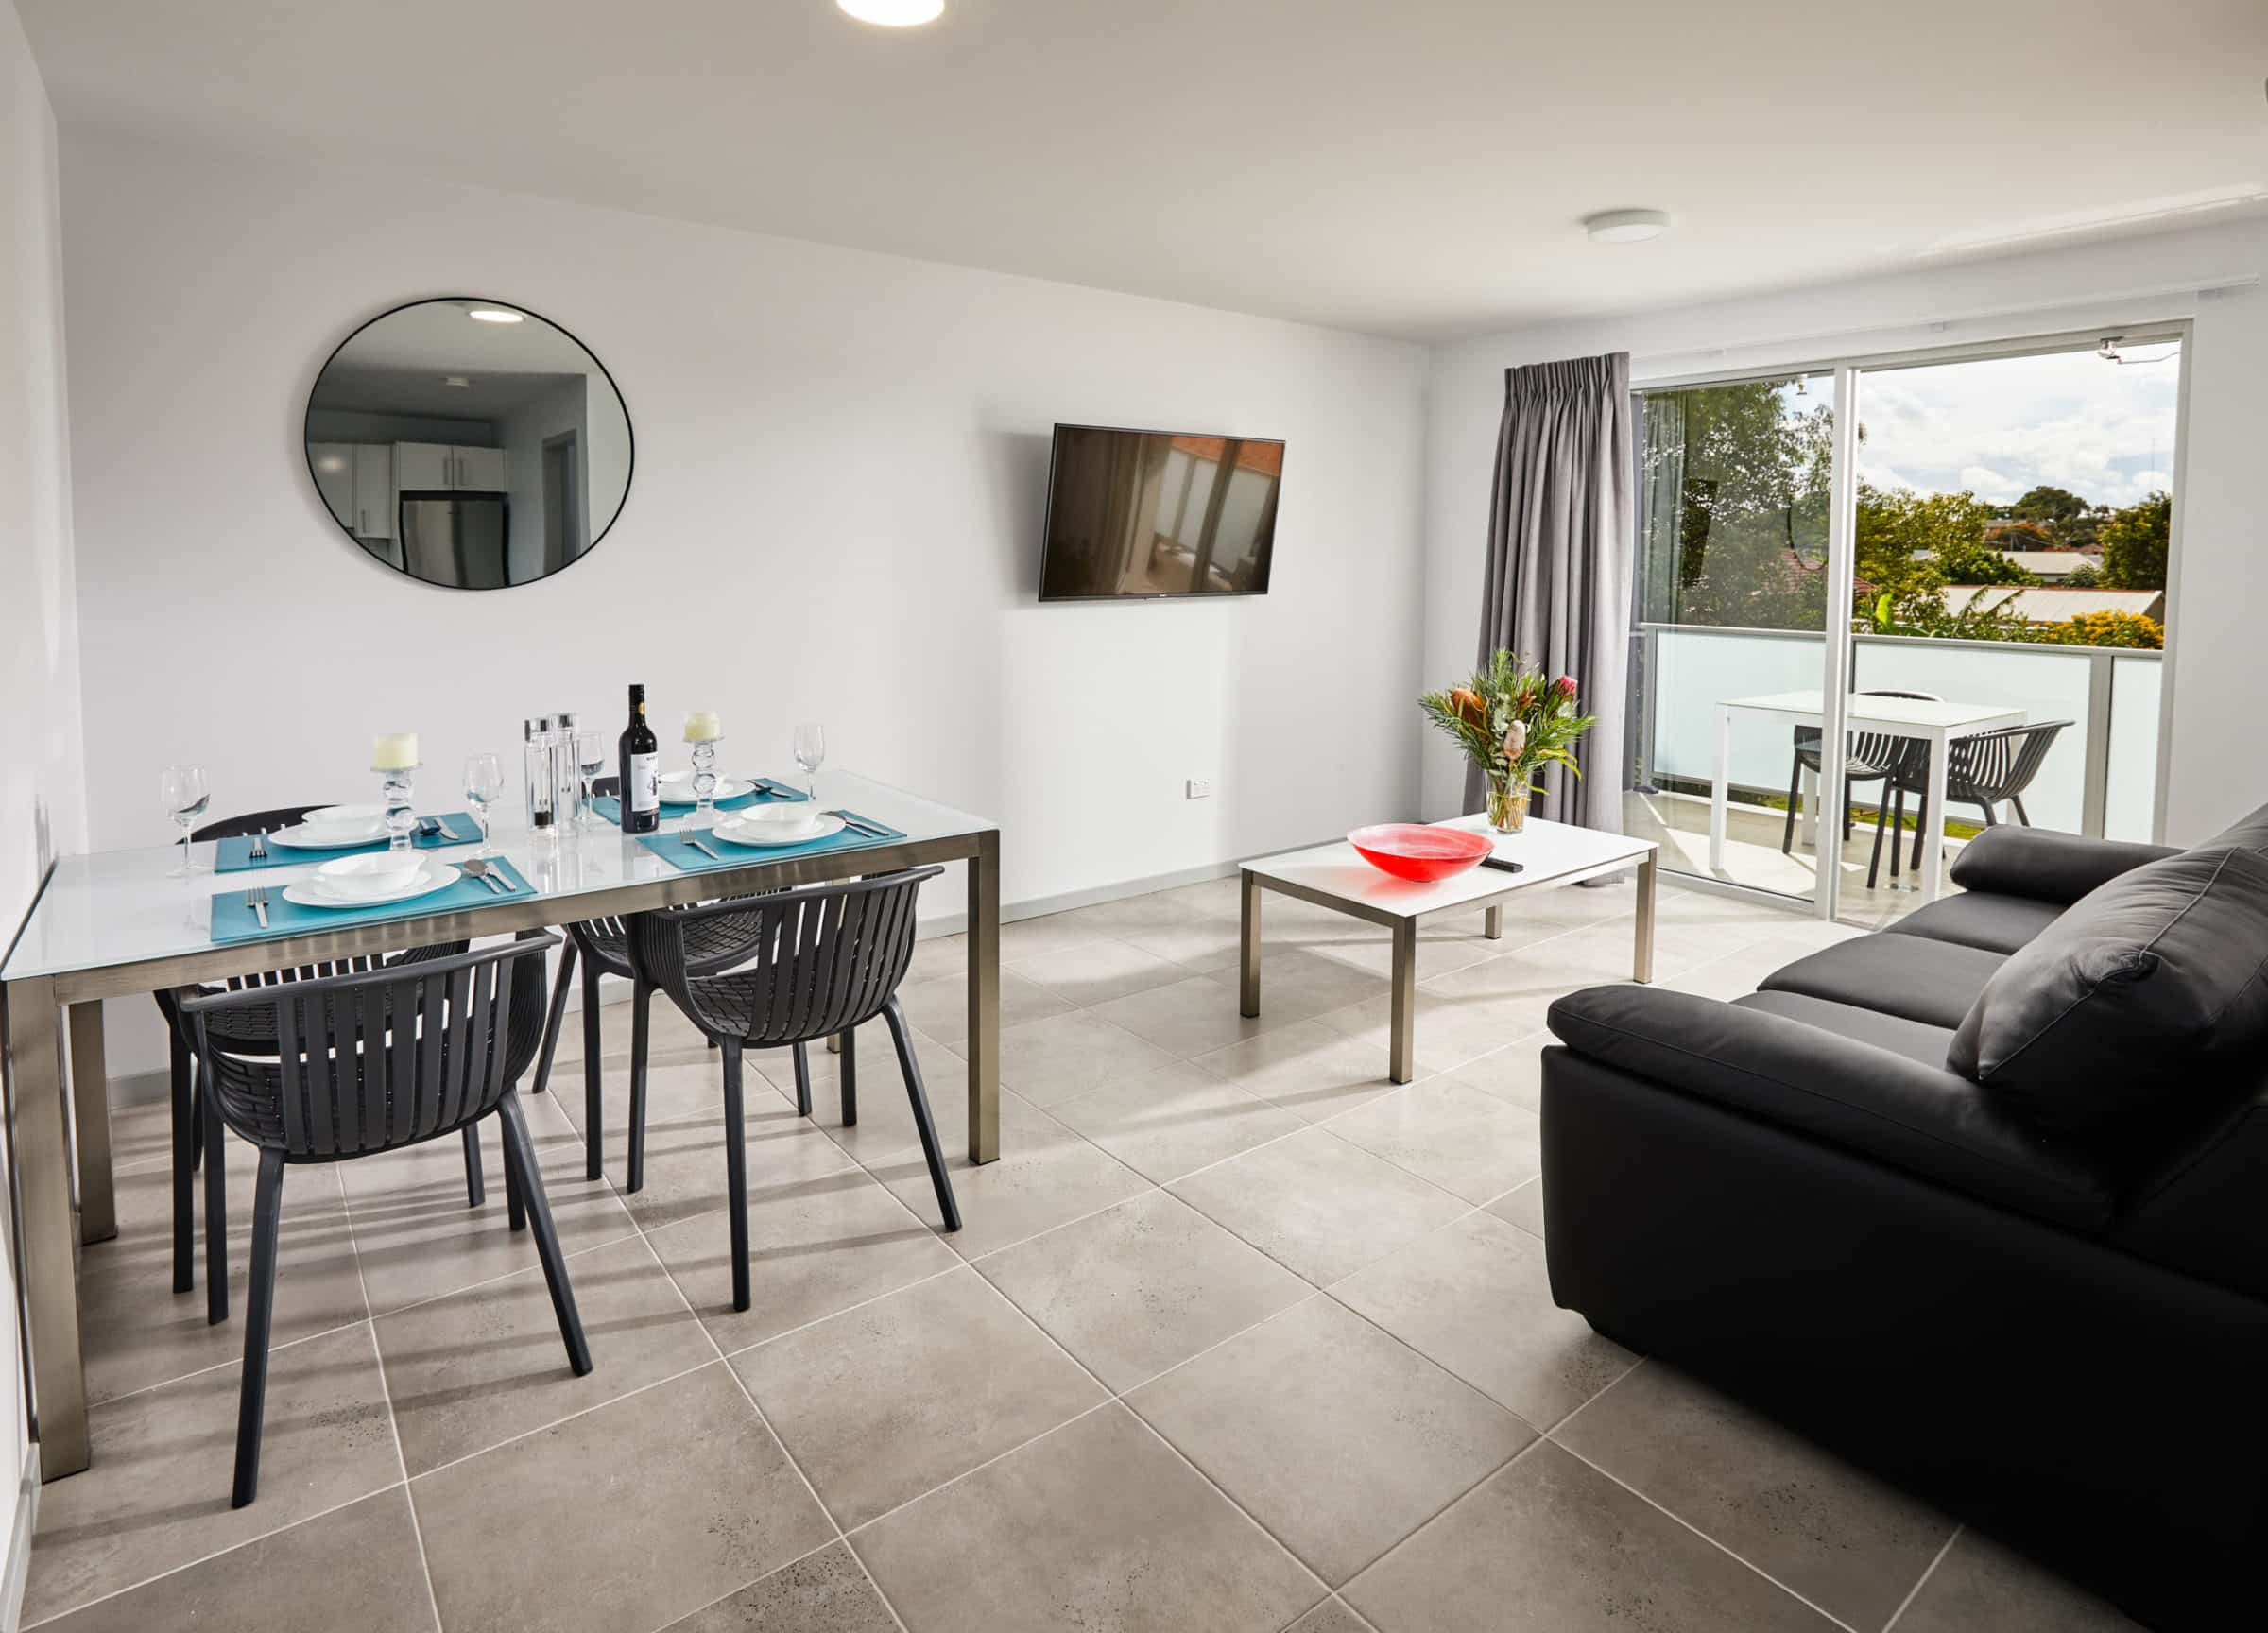 East Maitland Executive Apartments - https://www.newcastleapartments.com.au/wp-content/uploads/2020/03/room-scaled.jpg